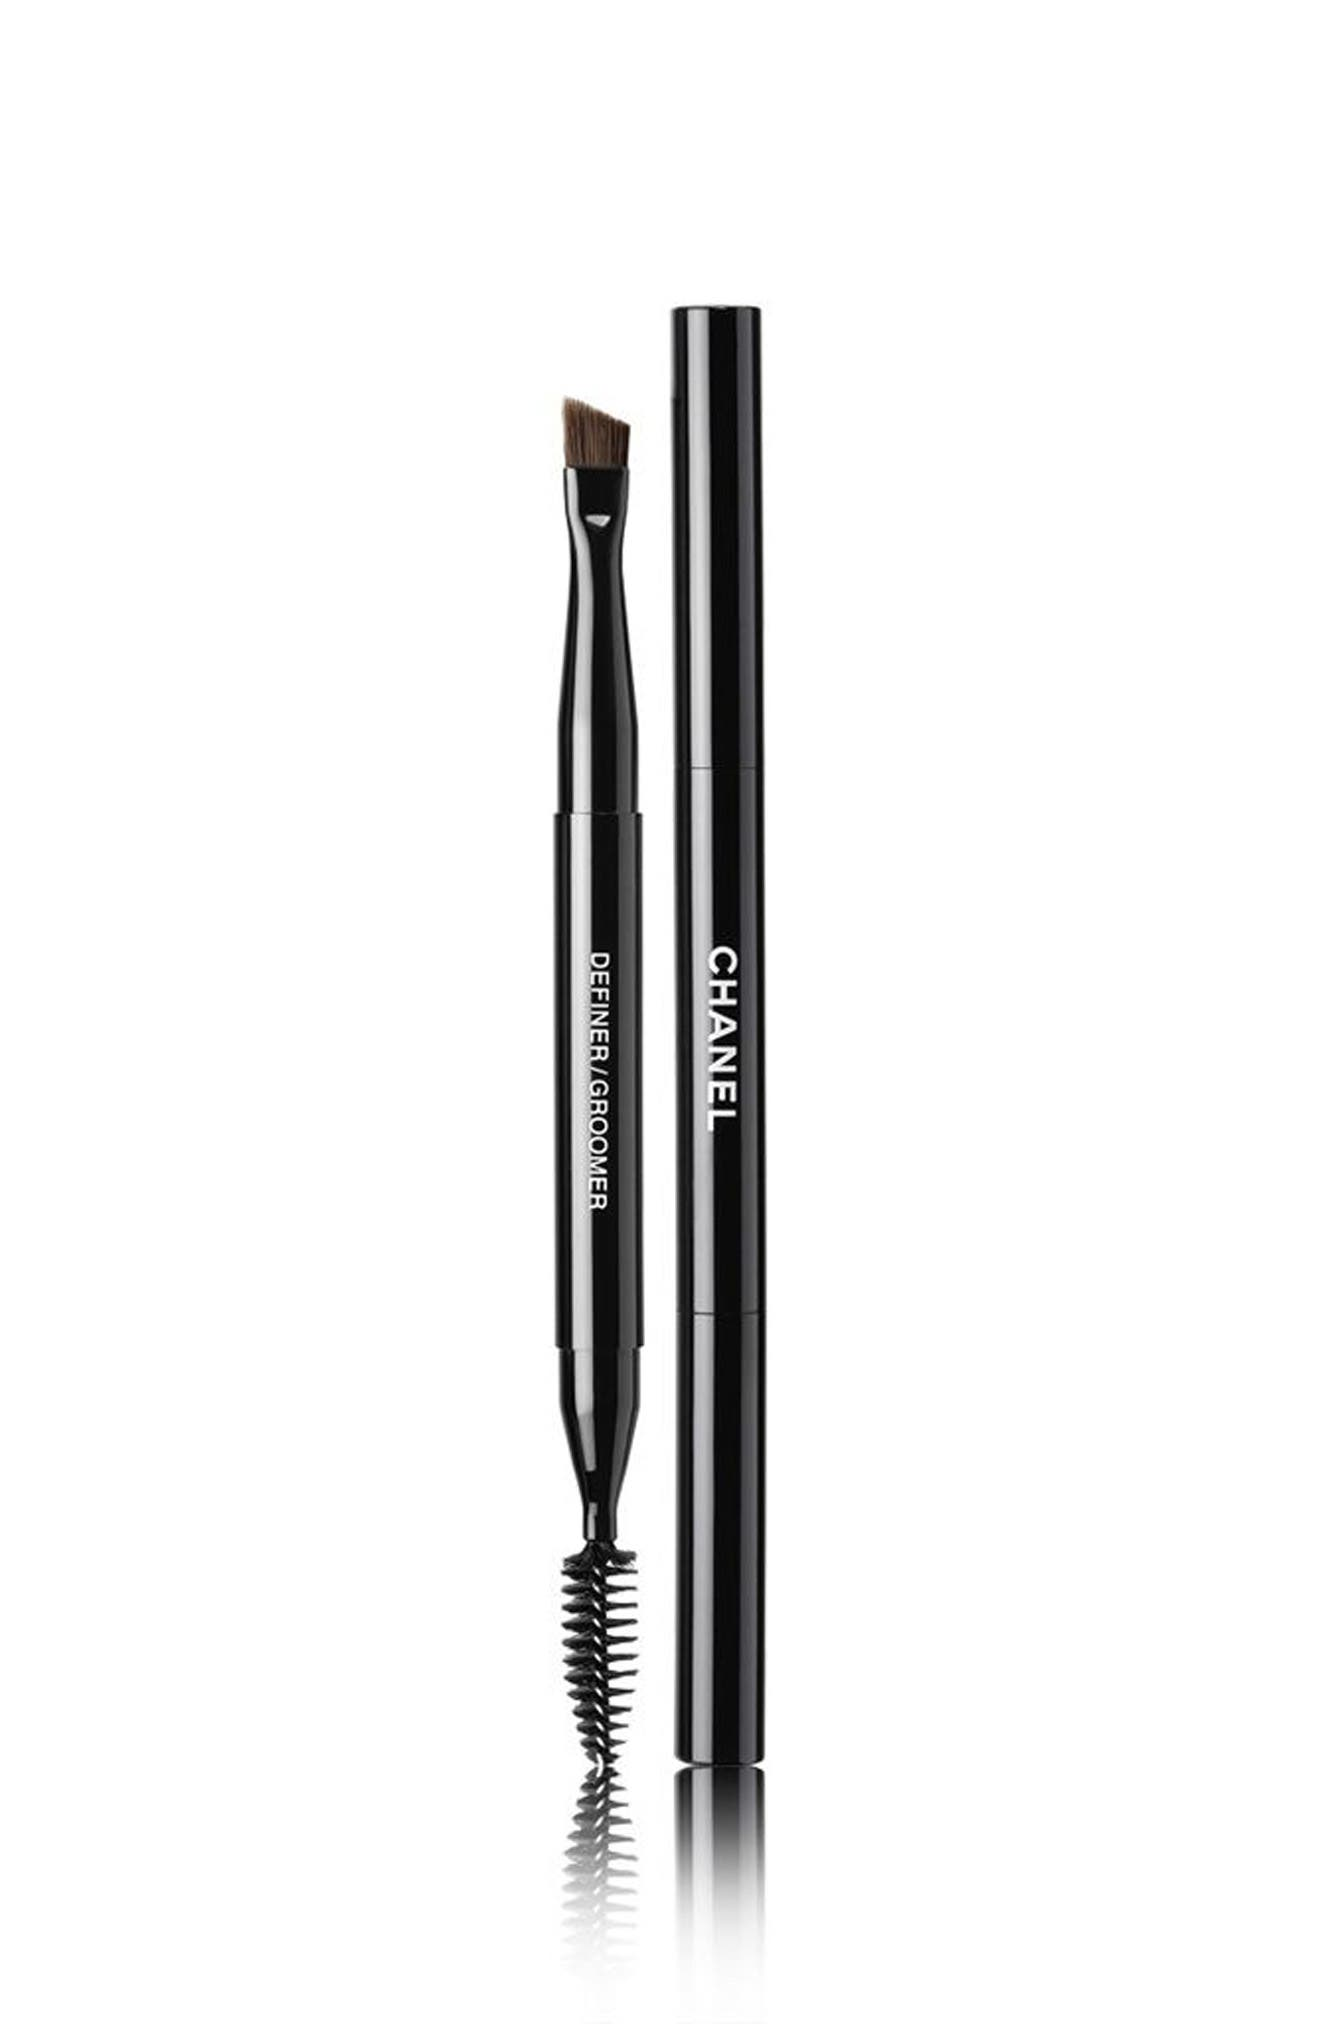 CHANEL LES PINCEAUX DE CHANEL 